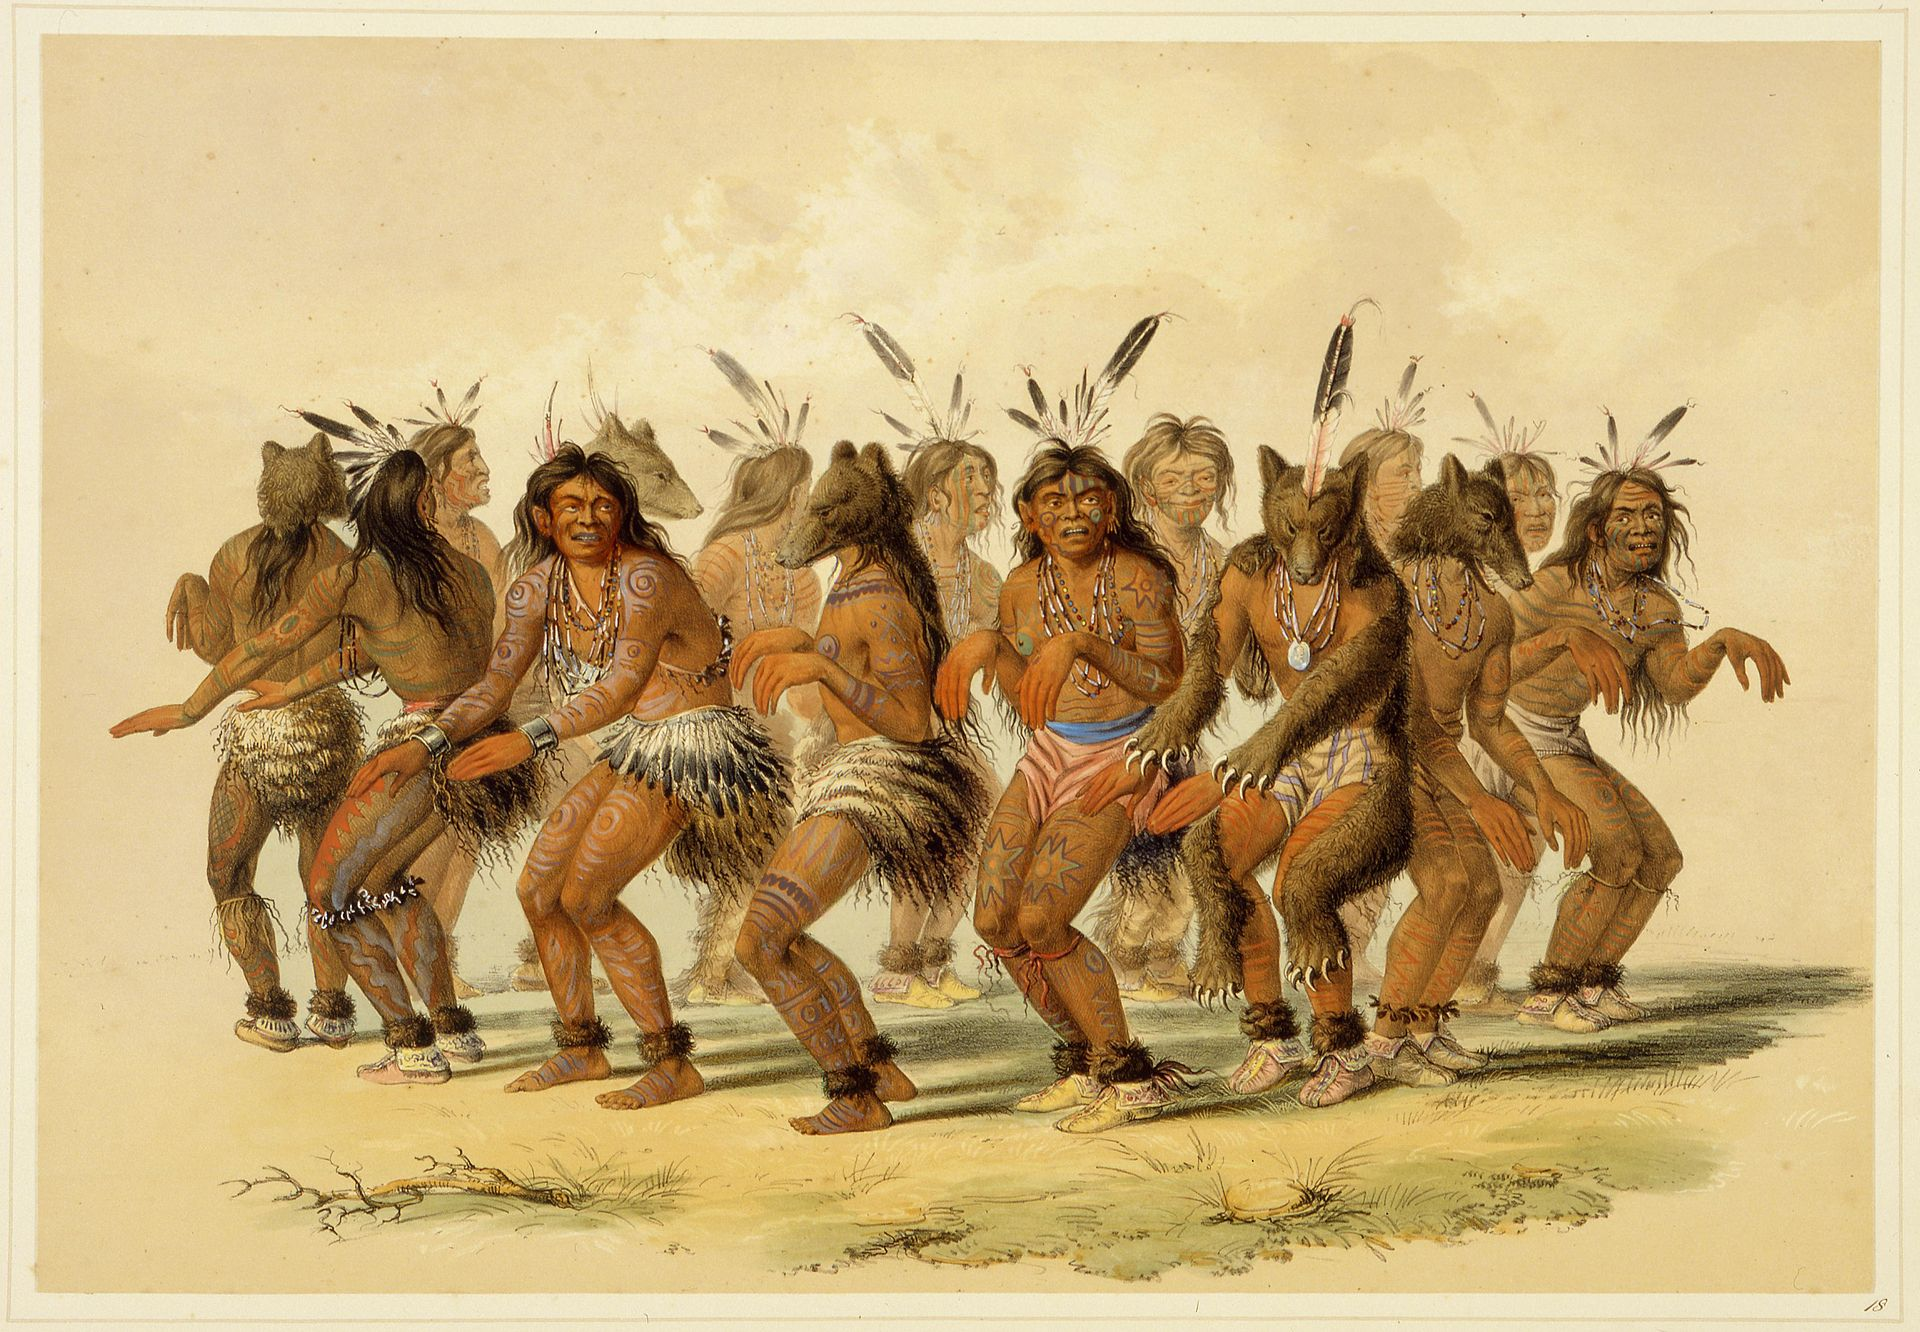 George_Catlin_-_The_Bear_Dance.jpg